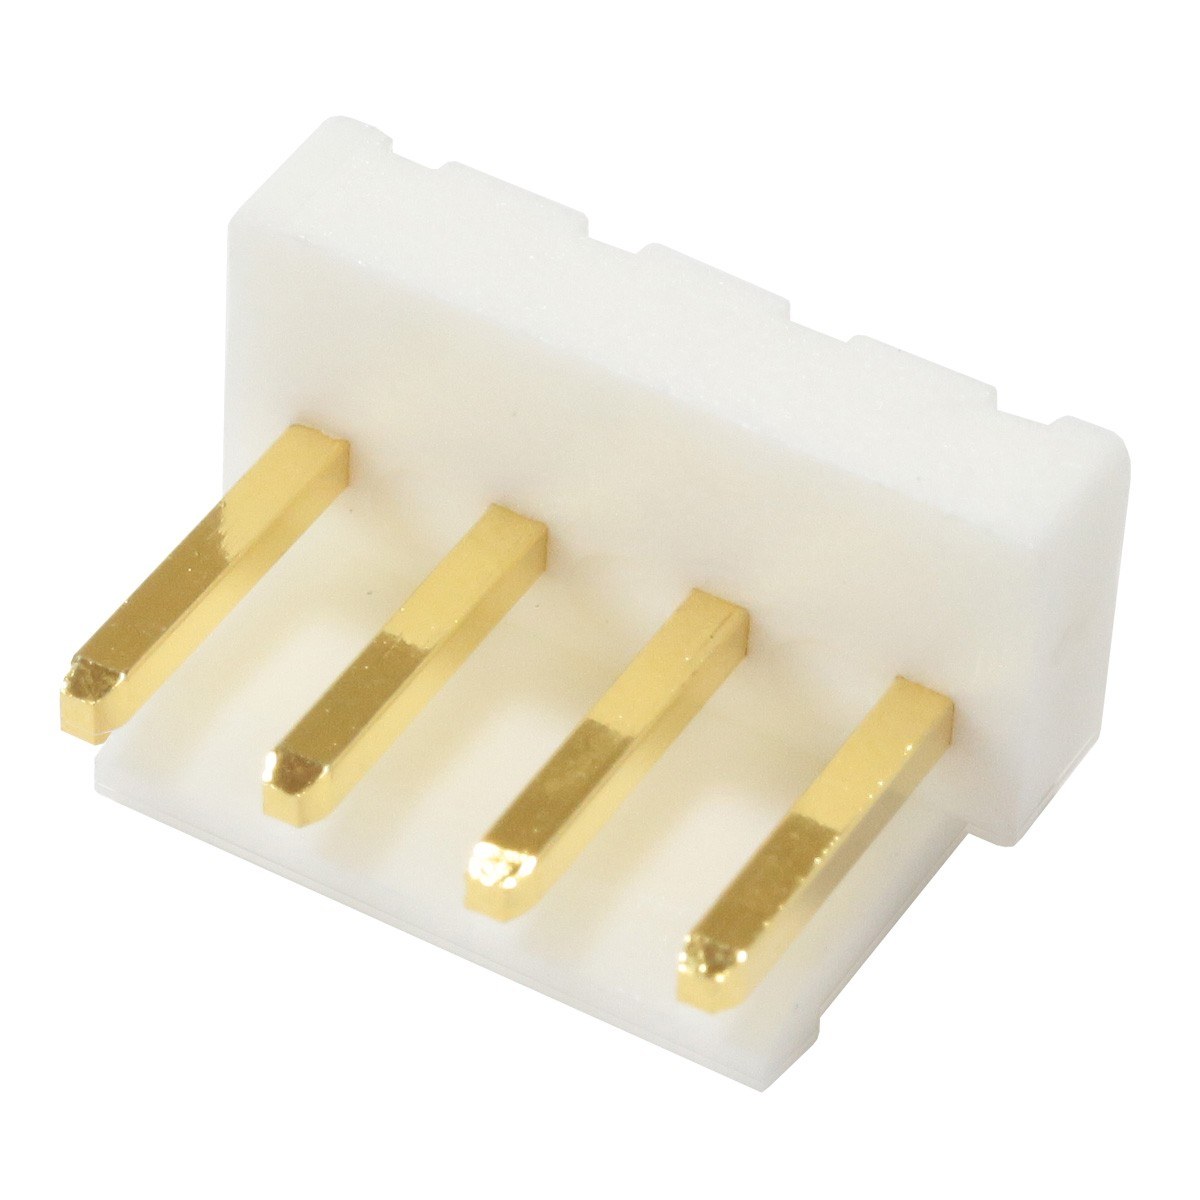 VH 3.96mm Male Socket 4 Channels Gold-Plated White (Unit)